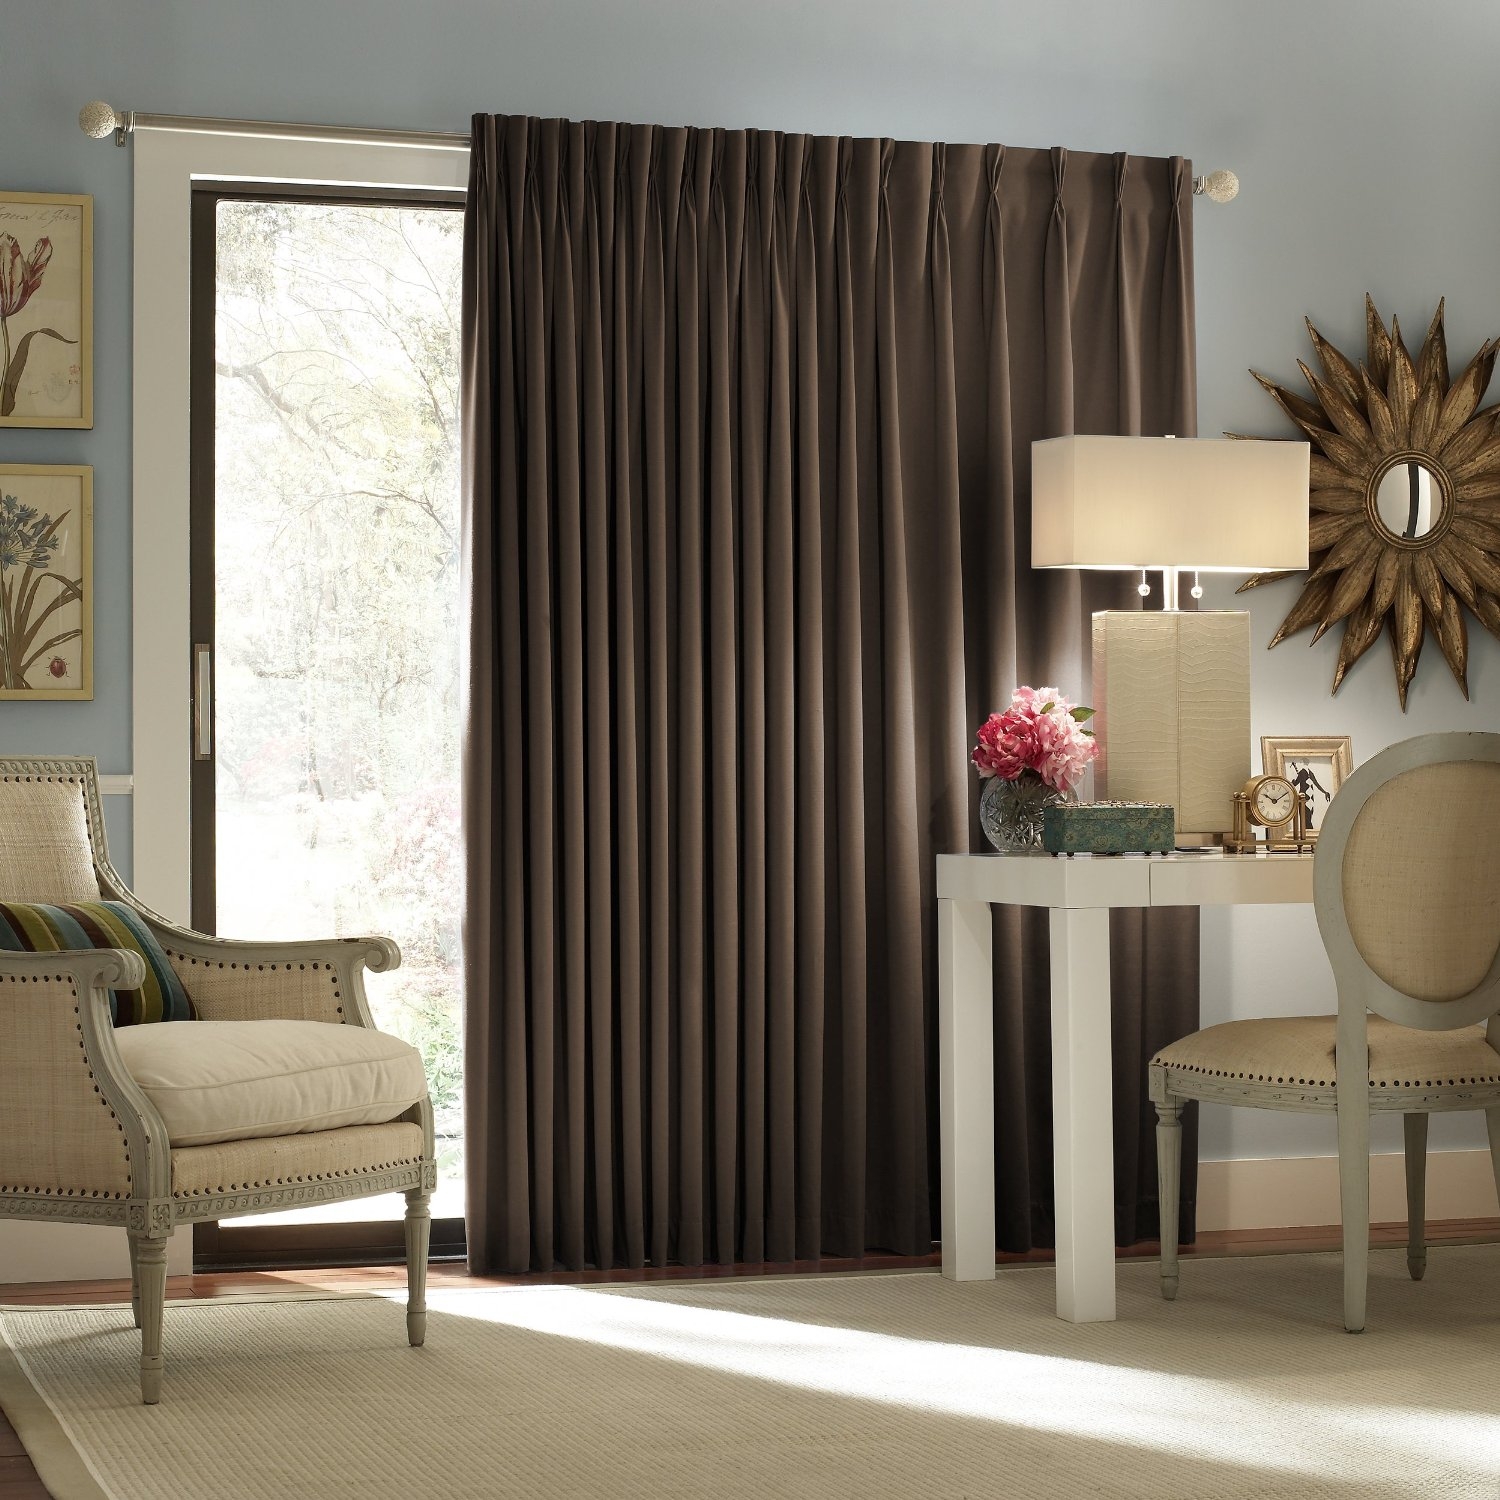 inspiration-curtains-interesting-dark-brown-fabric-sliding-curtain-doors-for-glass-entry-doors-as-well-as-simple-style-as-modern-drapes-ideas-also-vintage-accent-wood-armchairs-and-shade-lamps-on-whi